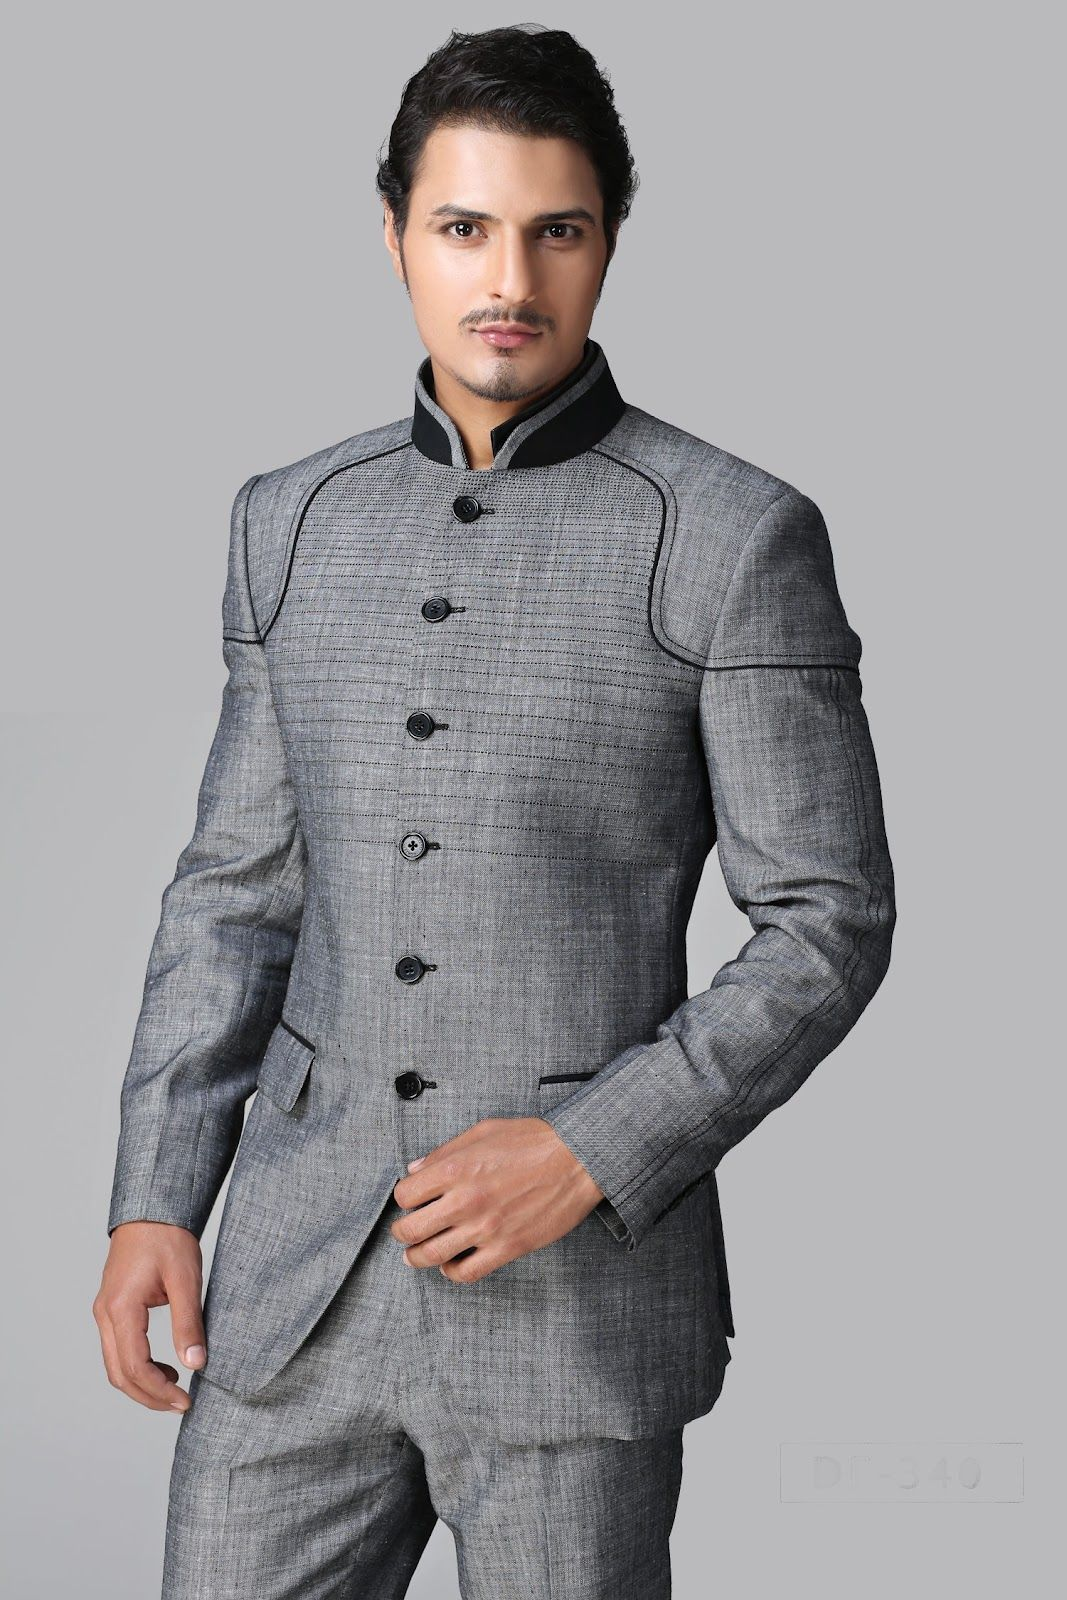 stylish designer suits for groom designersuits www